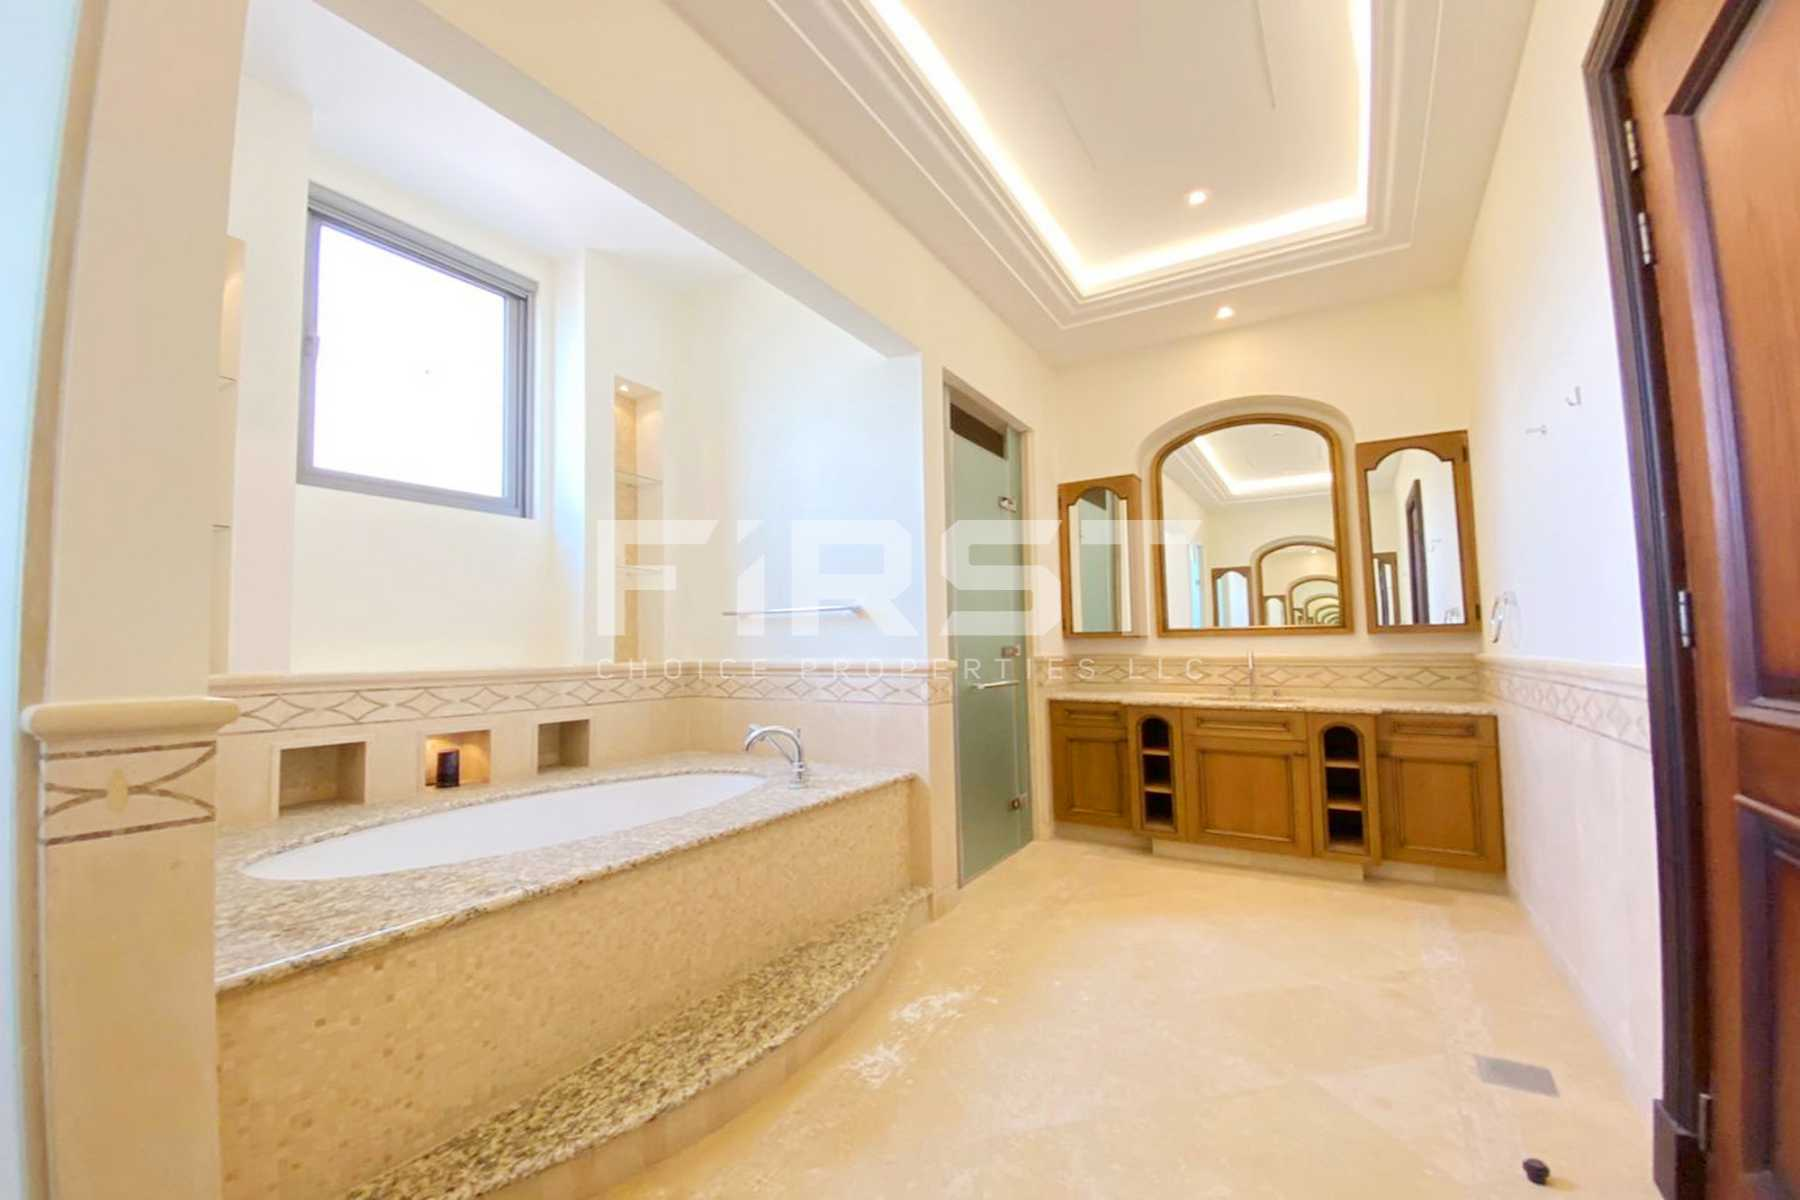 Internal Photo of 5 Bedroom Villa in Saadiyat Beach Villa in Saadiyat Island Abu Dhabi UAE (22).jpg